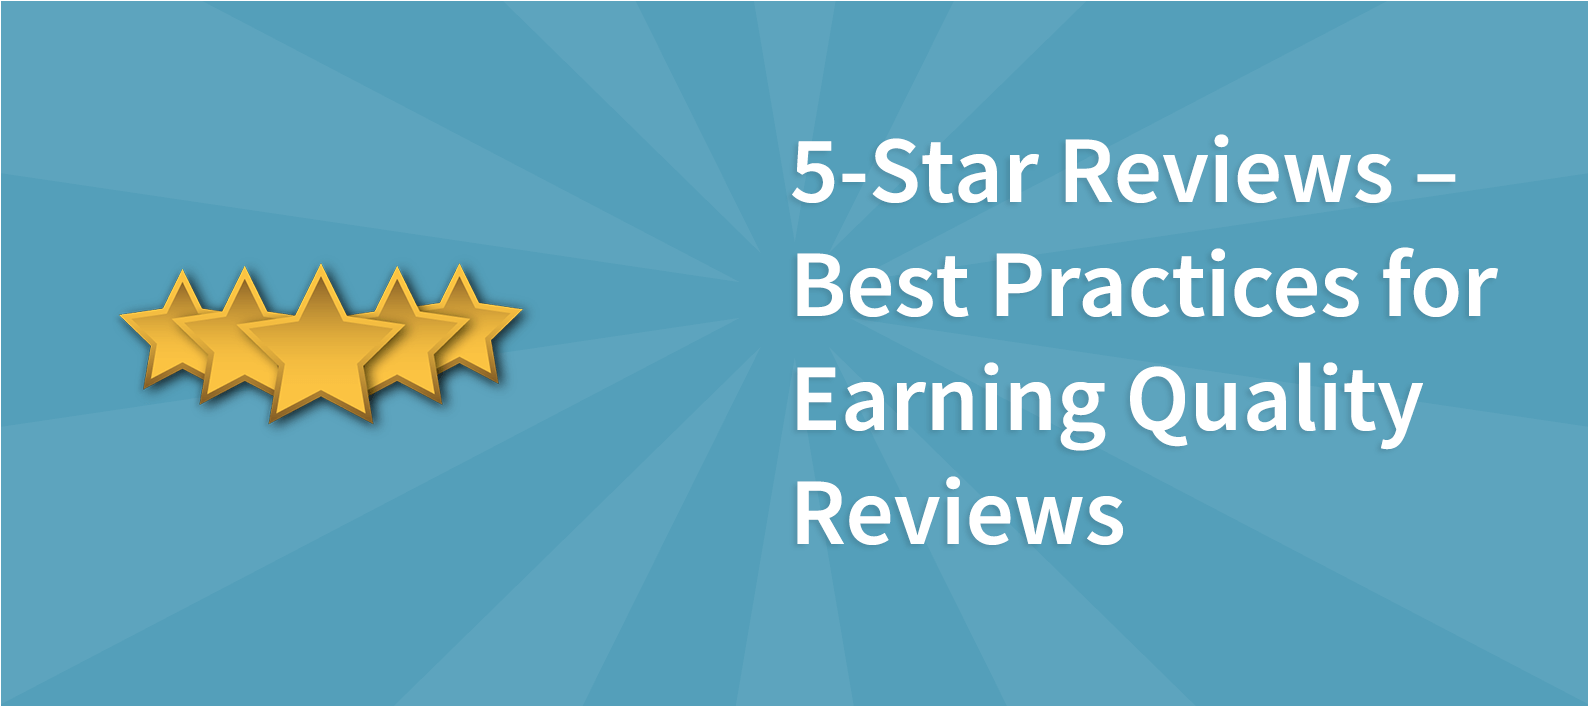 5-Star Reviews – Best Practices for Earning Quality Reviews